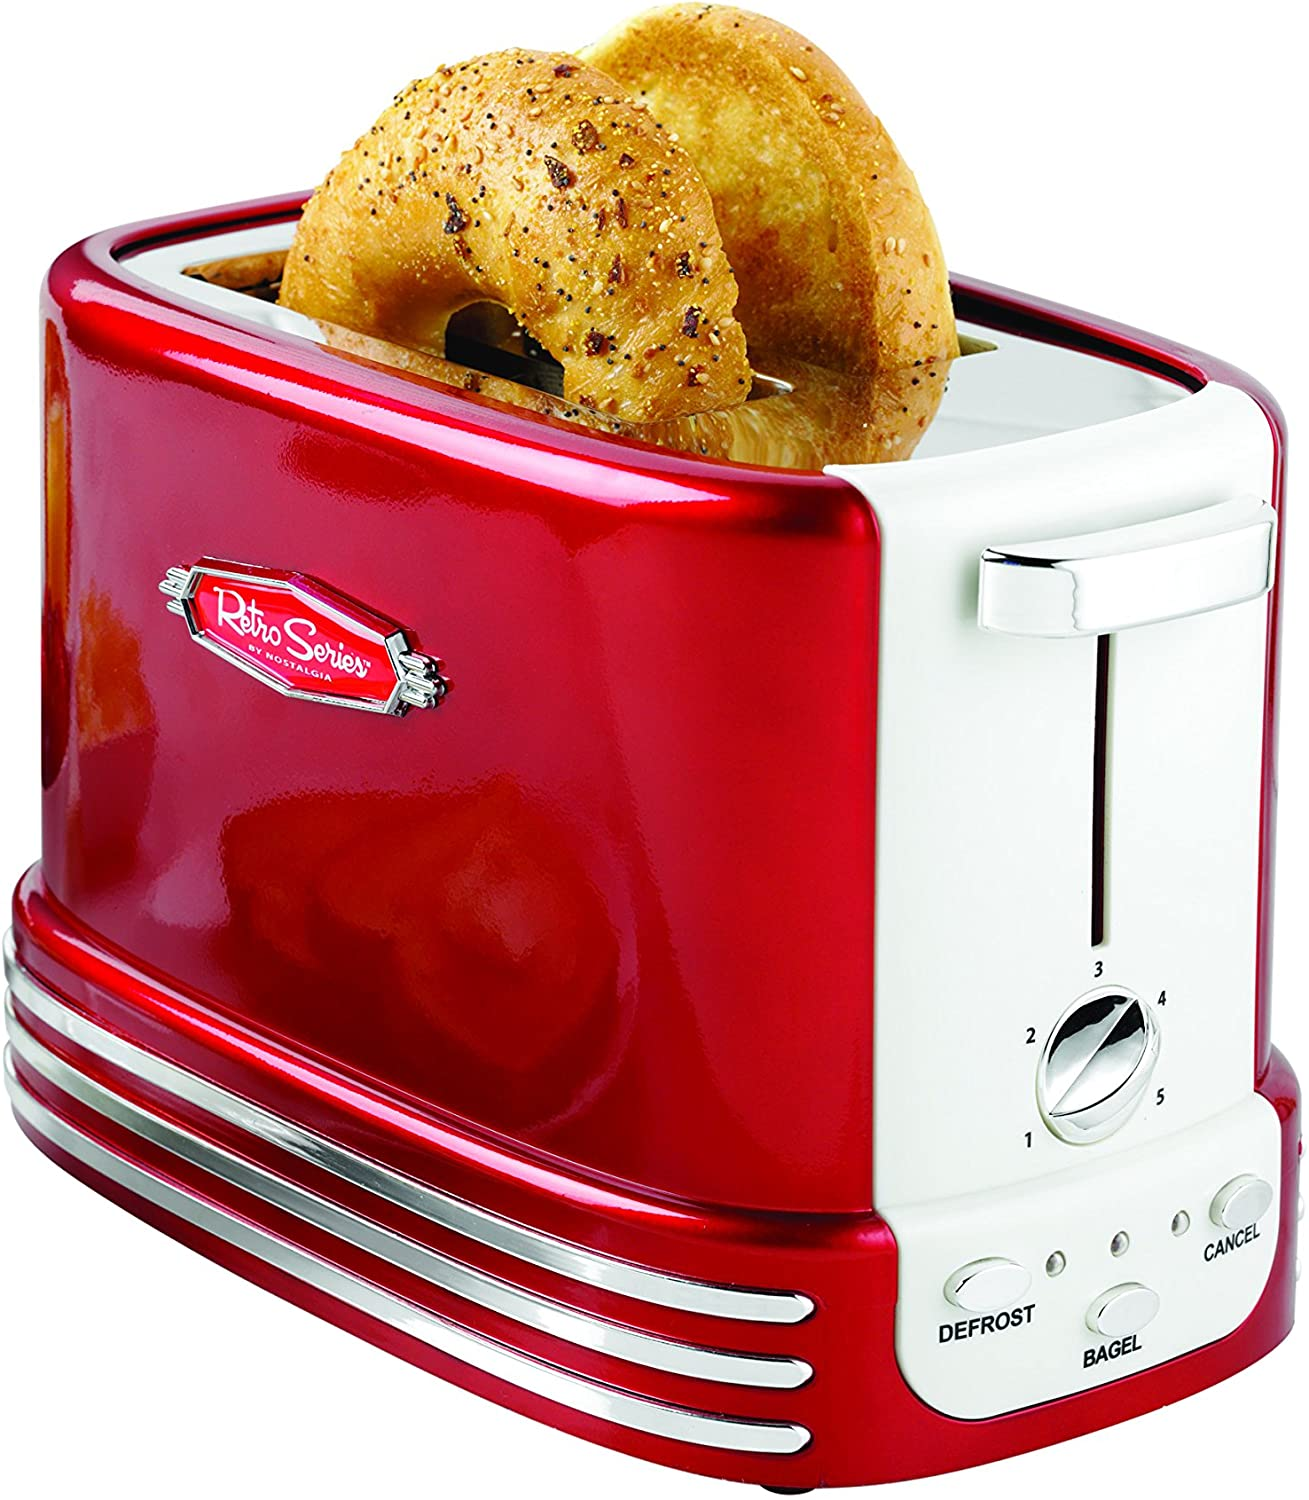 Amazon Com Nostalgia New And Improved Wide 2 Slice Toaster Perfect For Bread English Muffins Bagels 5 Browning Levels With Crumb Tray Cord Storage Retro Red Kitchen Dining